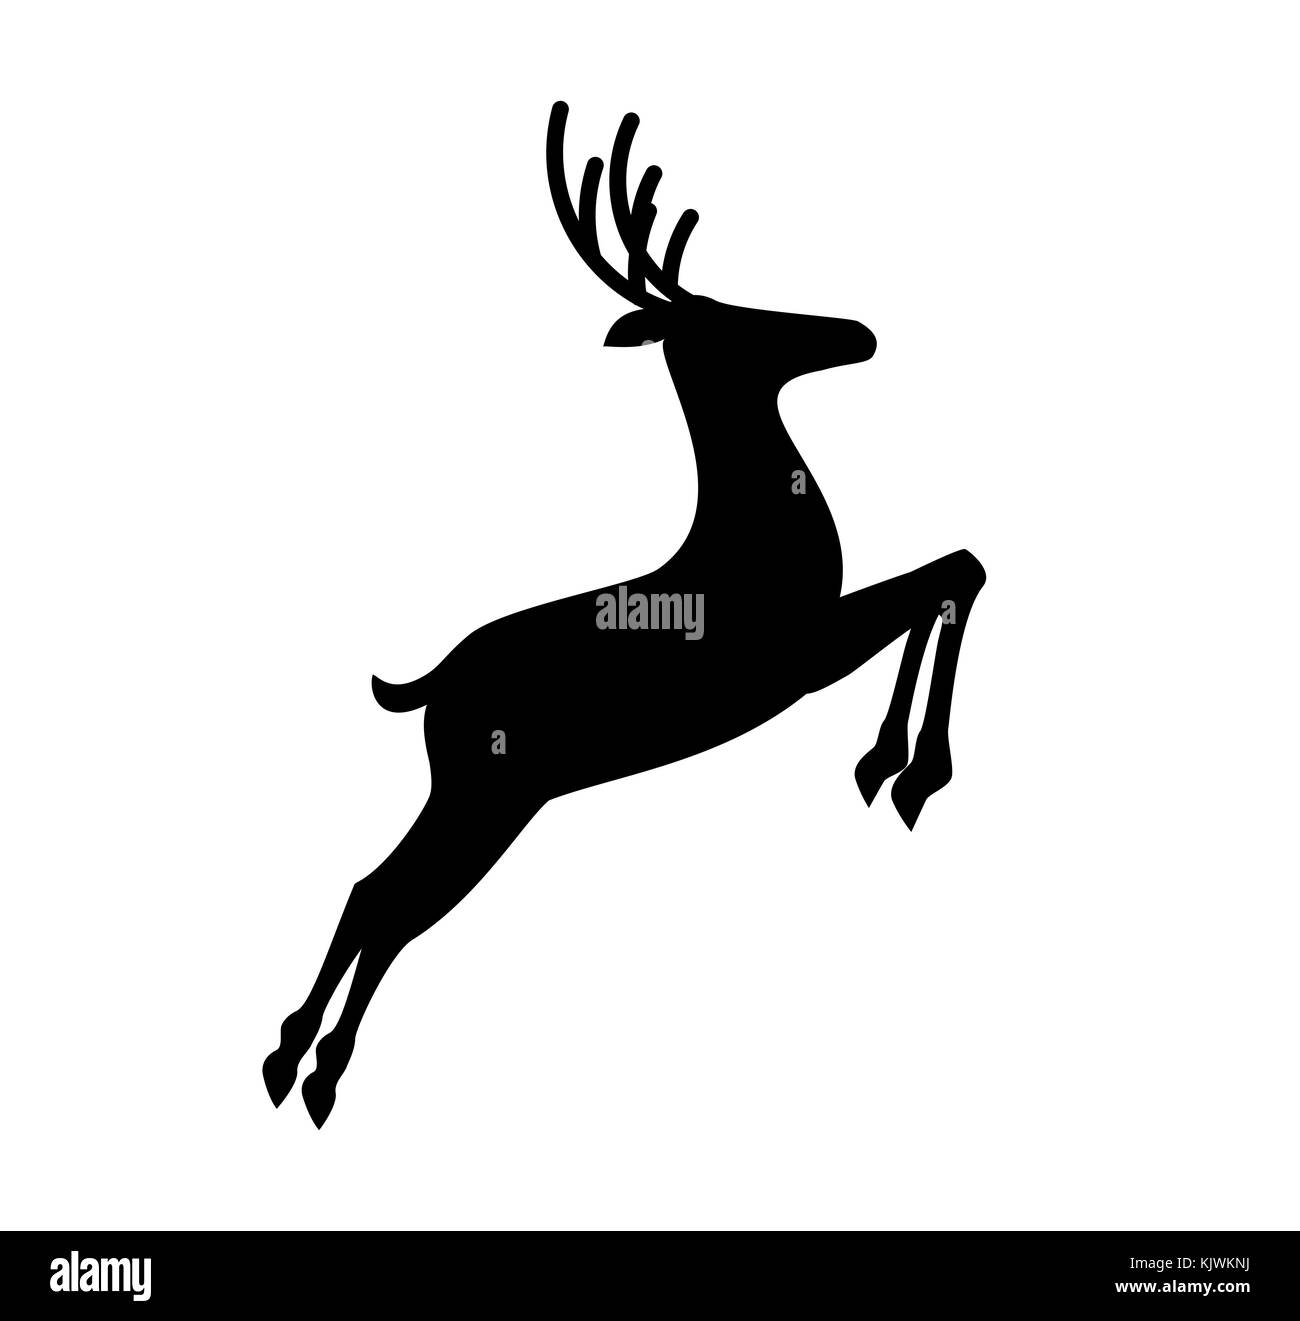 Reindeer Black And White Stock Photos Amp Images Alamy